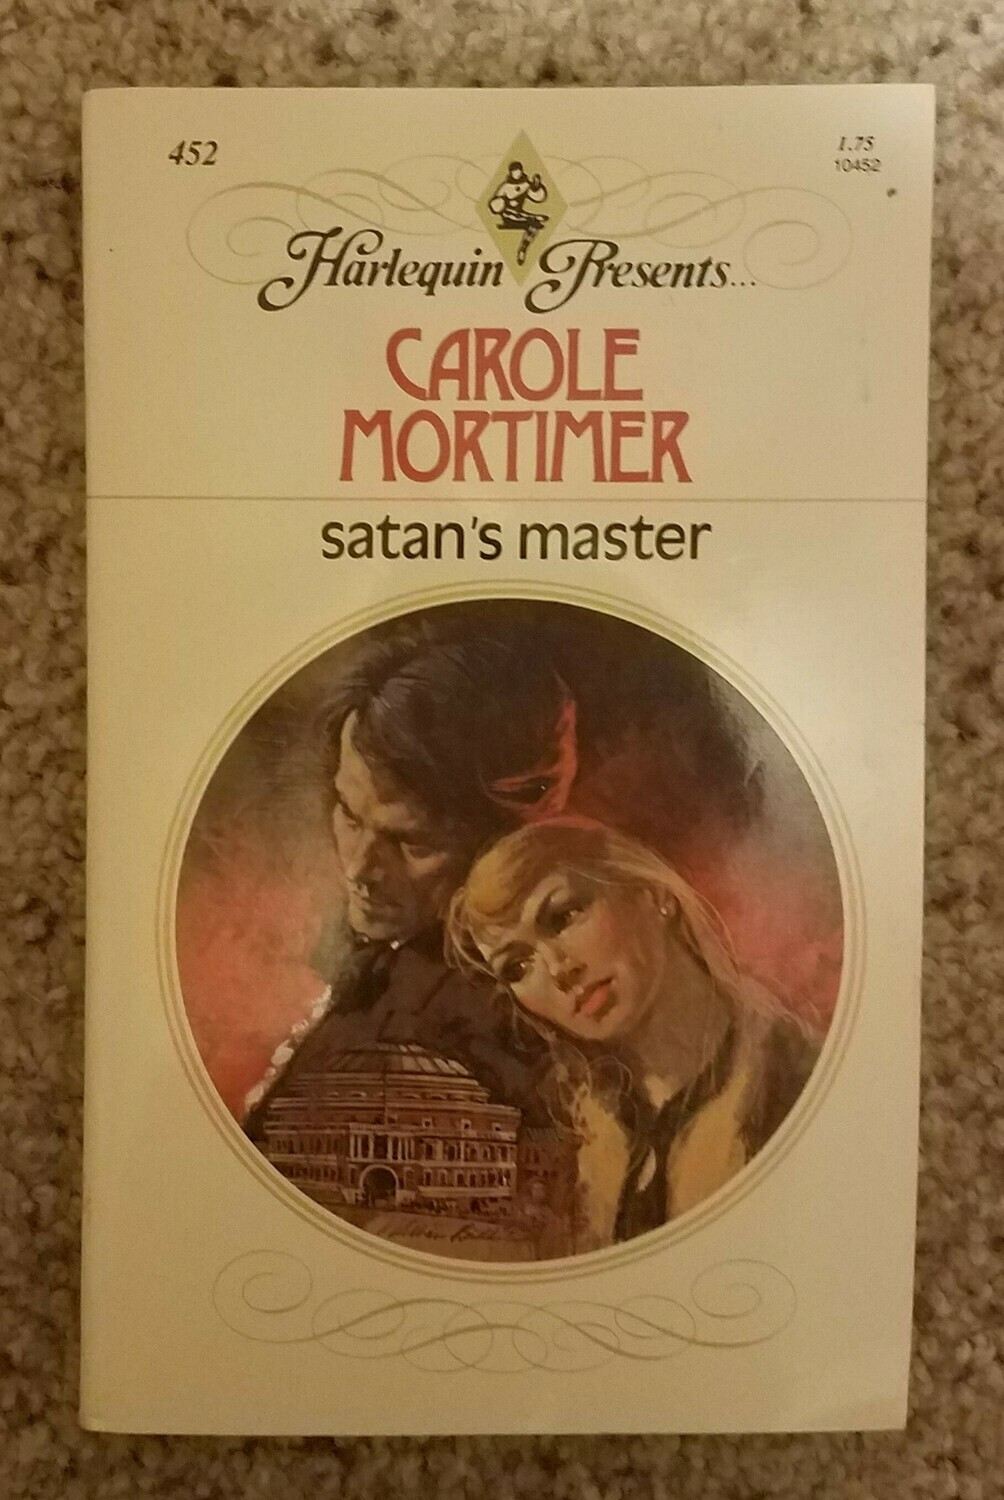 Satan's Master by Carole Mortimer